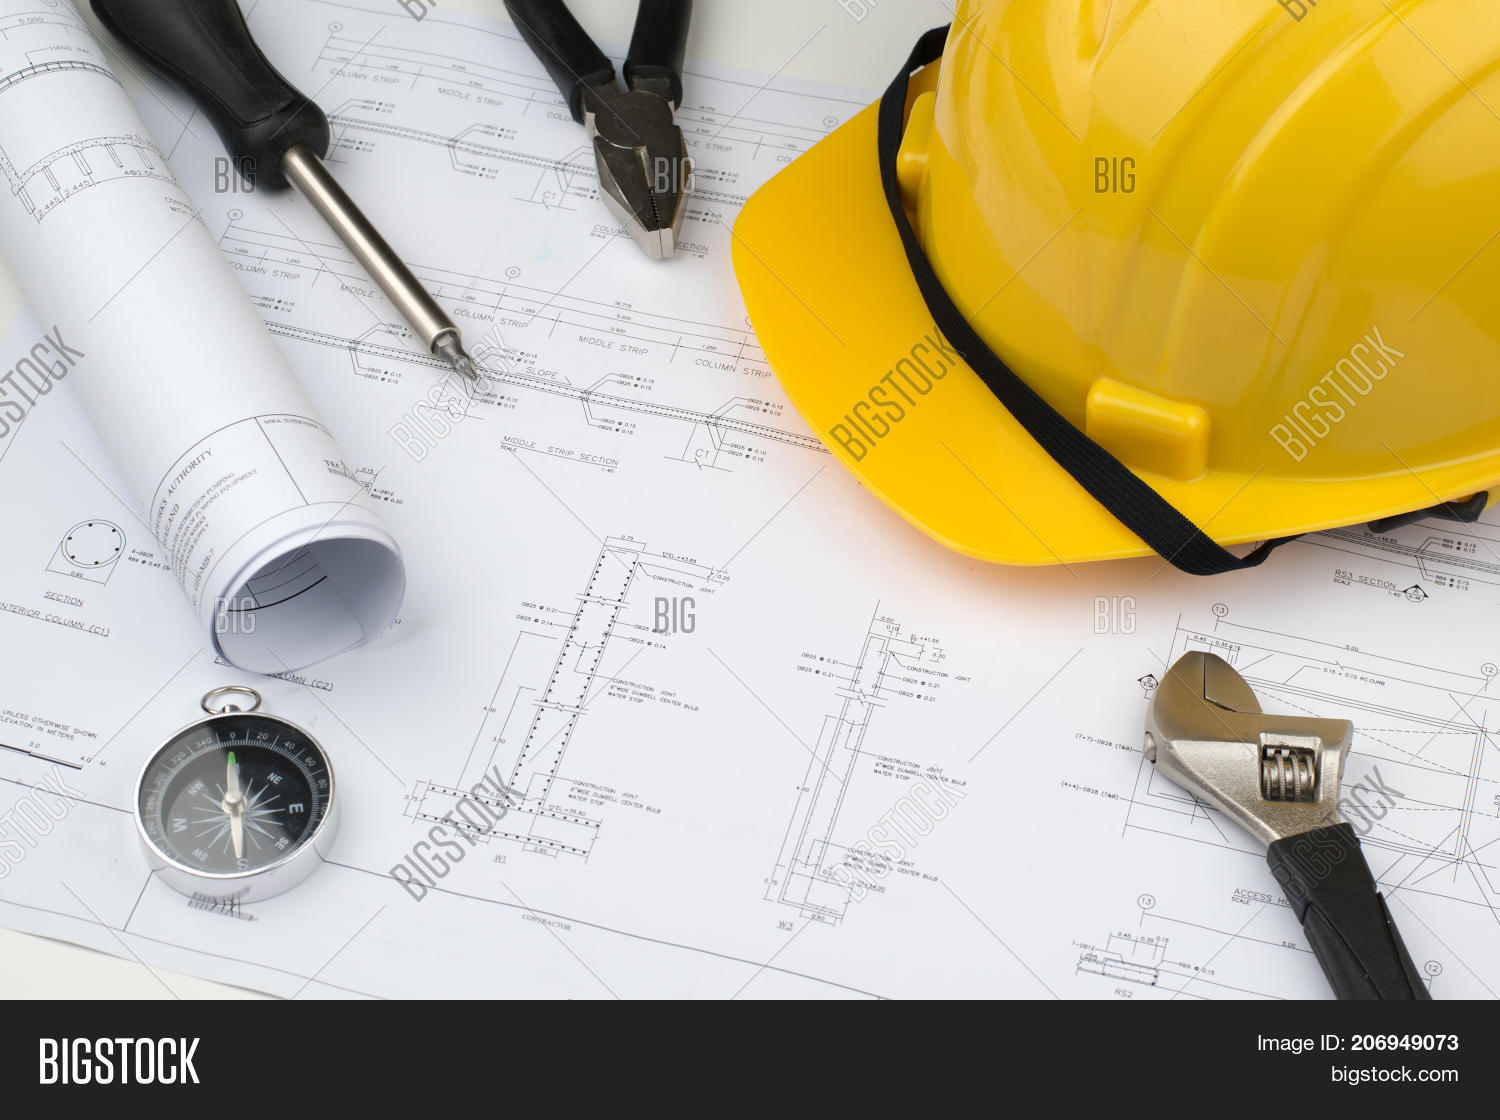 Engineer construction business work image photo bigstock engineer construction business work concept engineering blueprint diagrams paper drafting and industrial equipment technical tools malvernweather Gallery